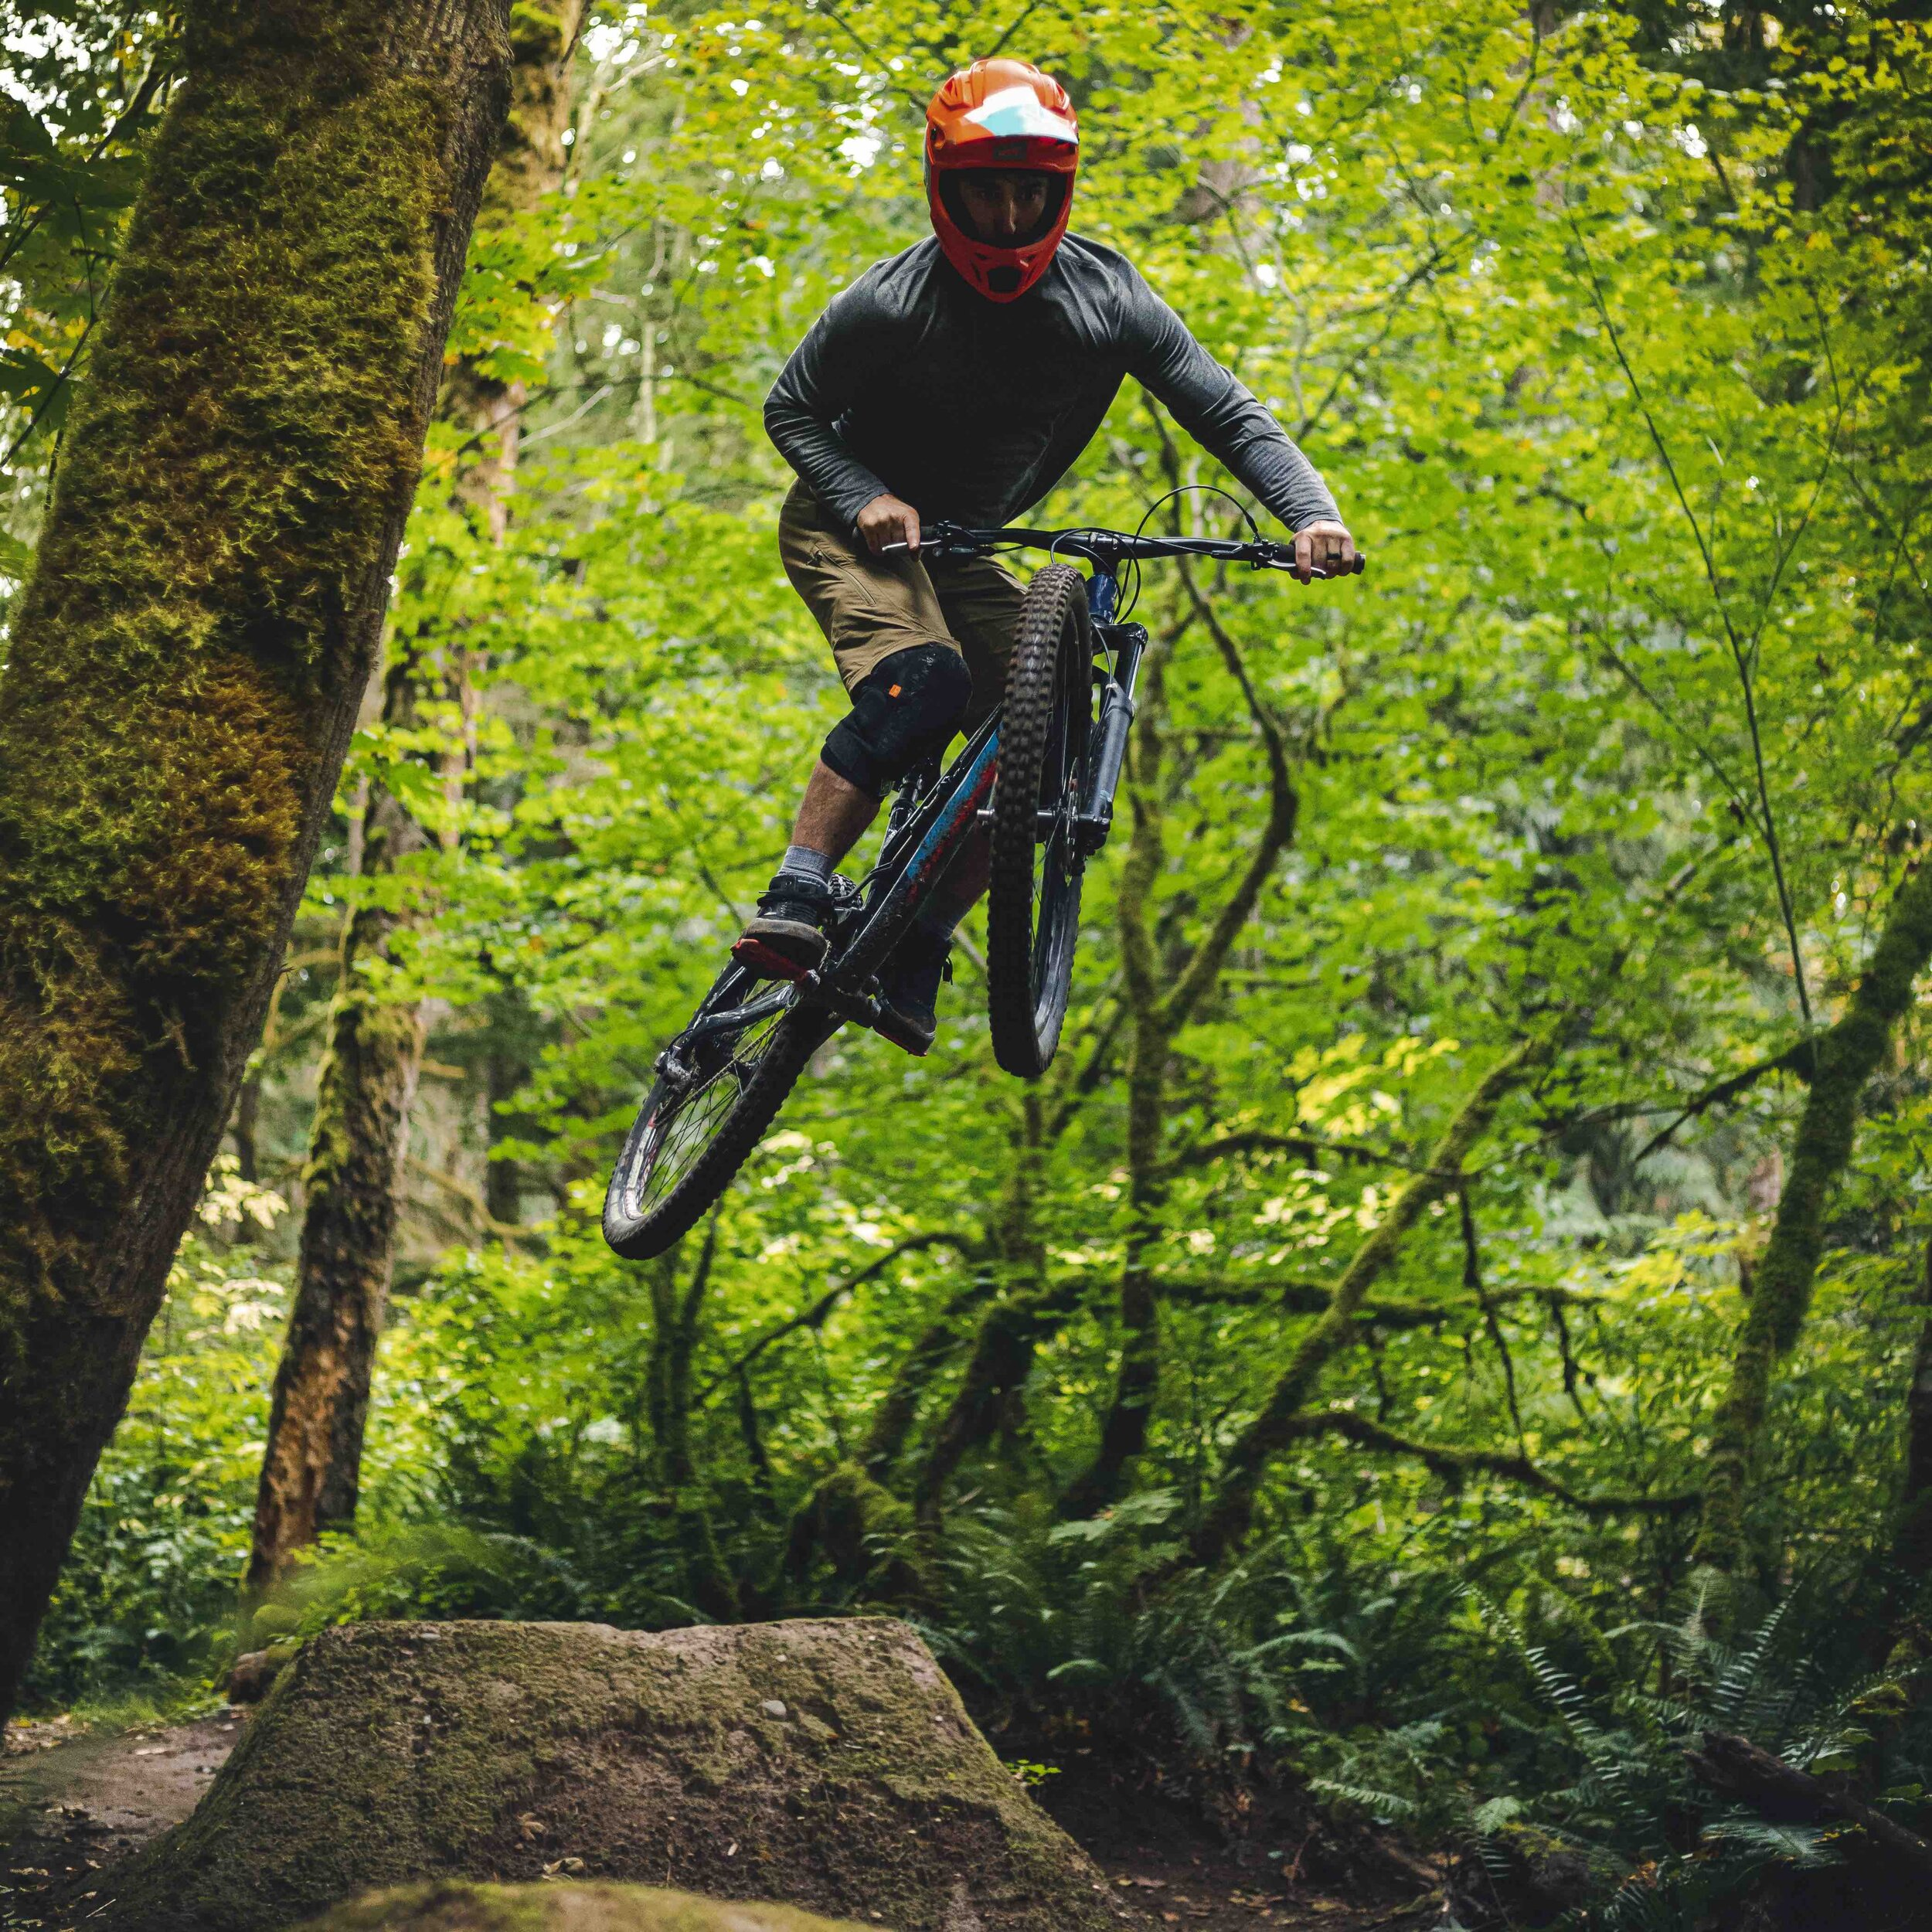 Extreme_Sports_Athlete_Catching_Air_on_Forest_Mountain_Bike_Jumps.jpeg